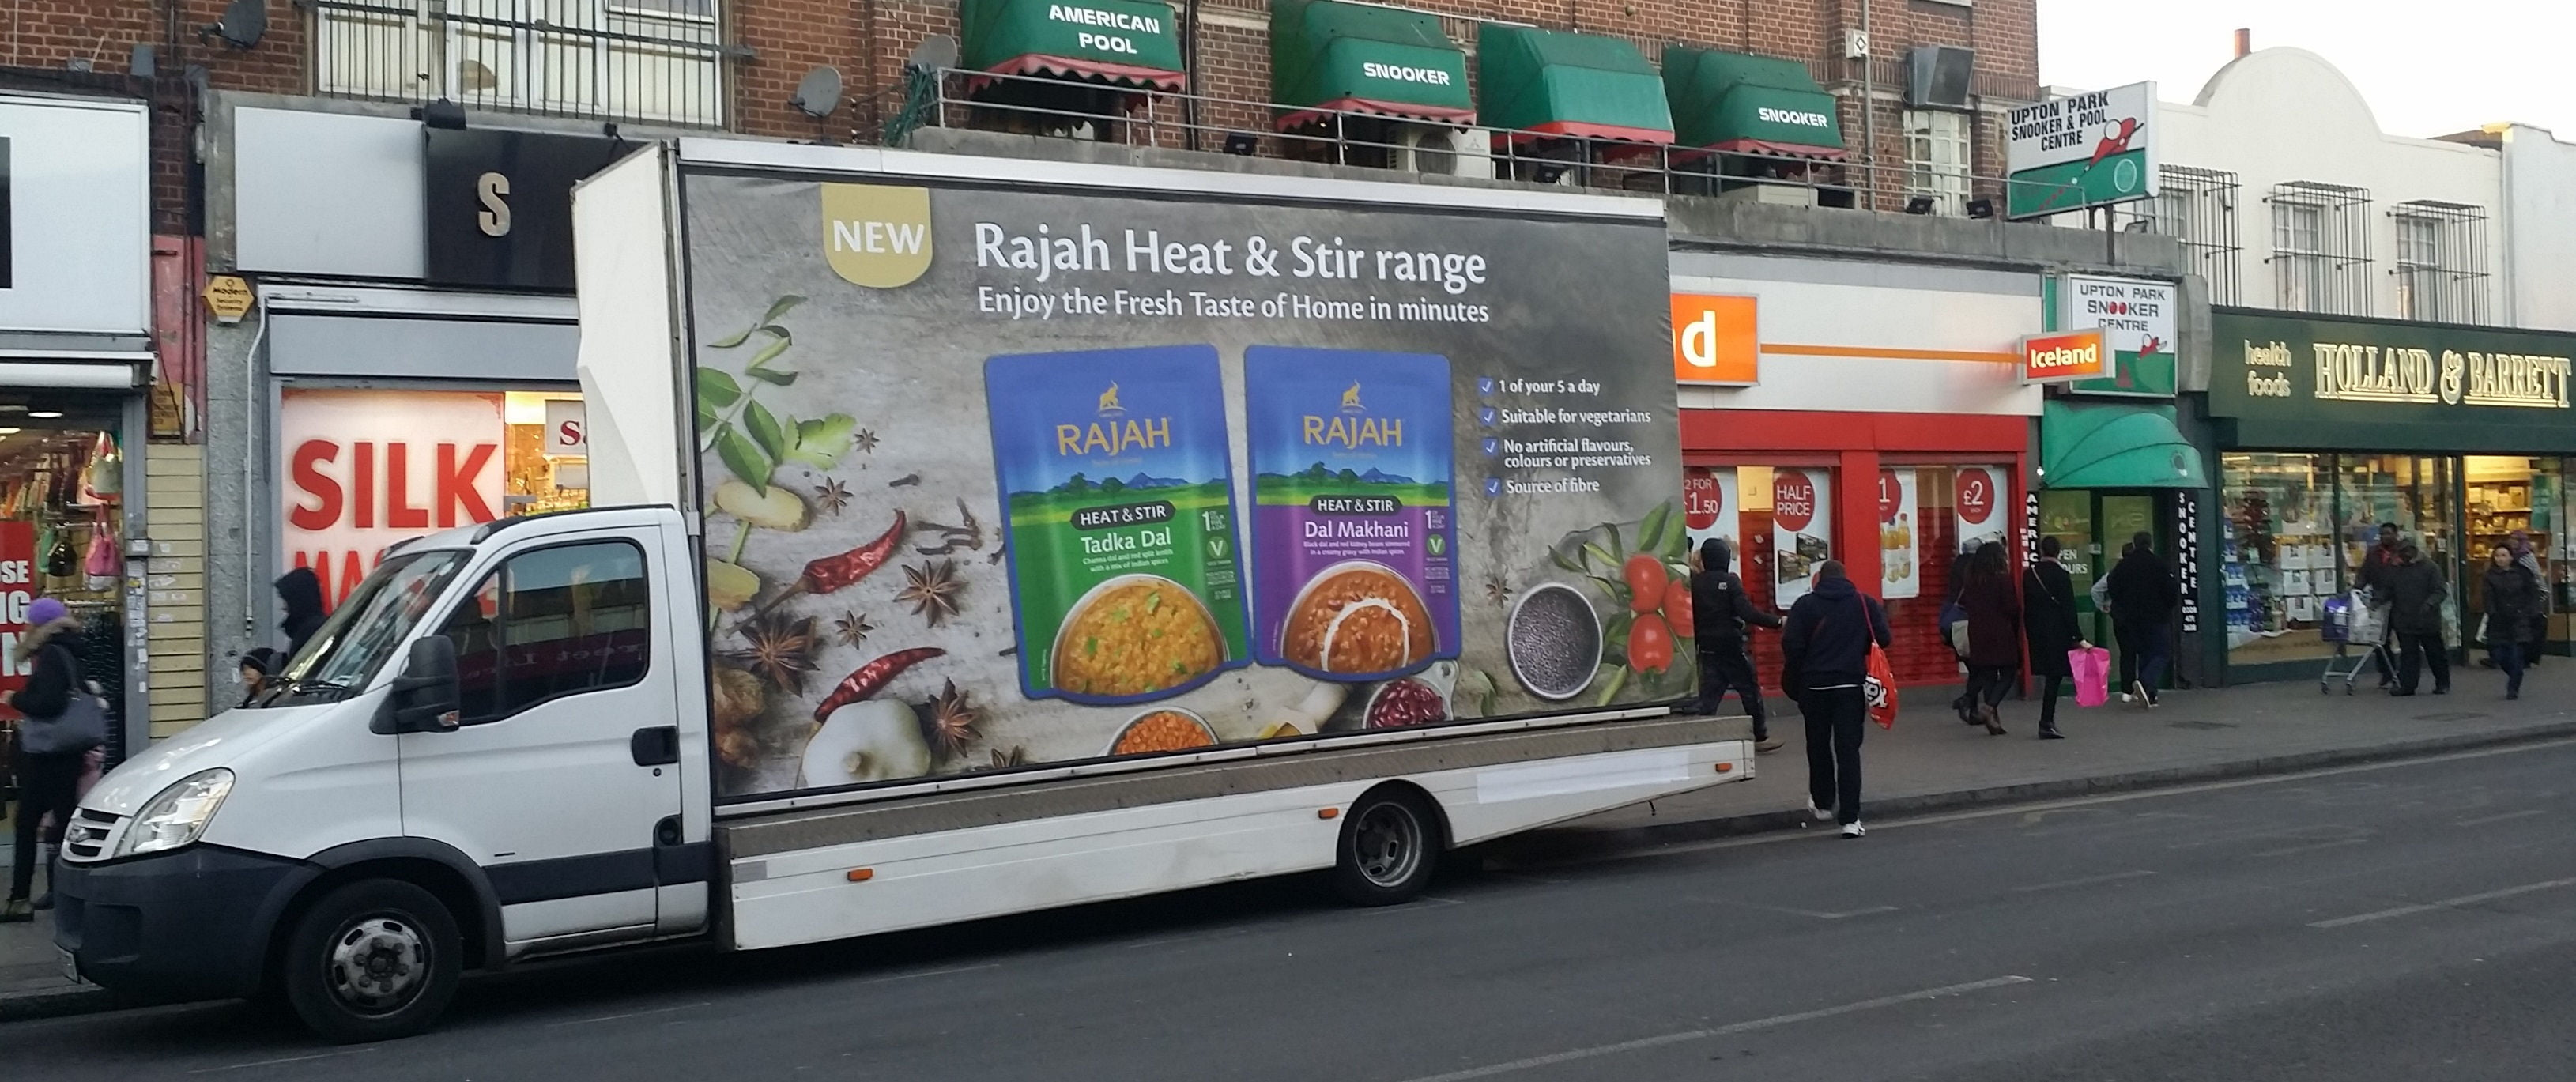 Rajah Heat & Stir are coming to Manchester this weekend! image